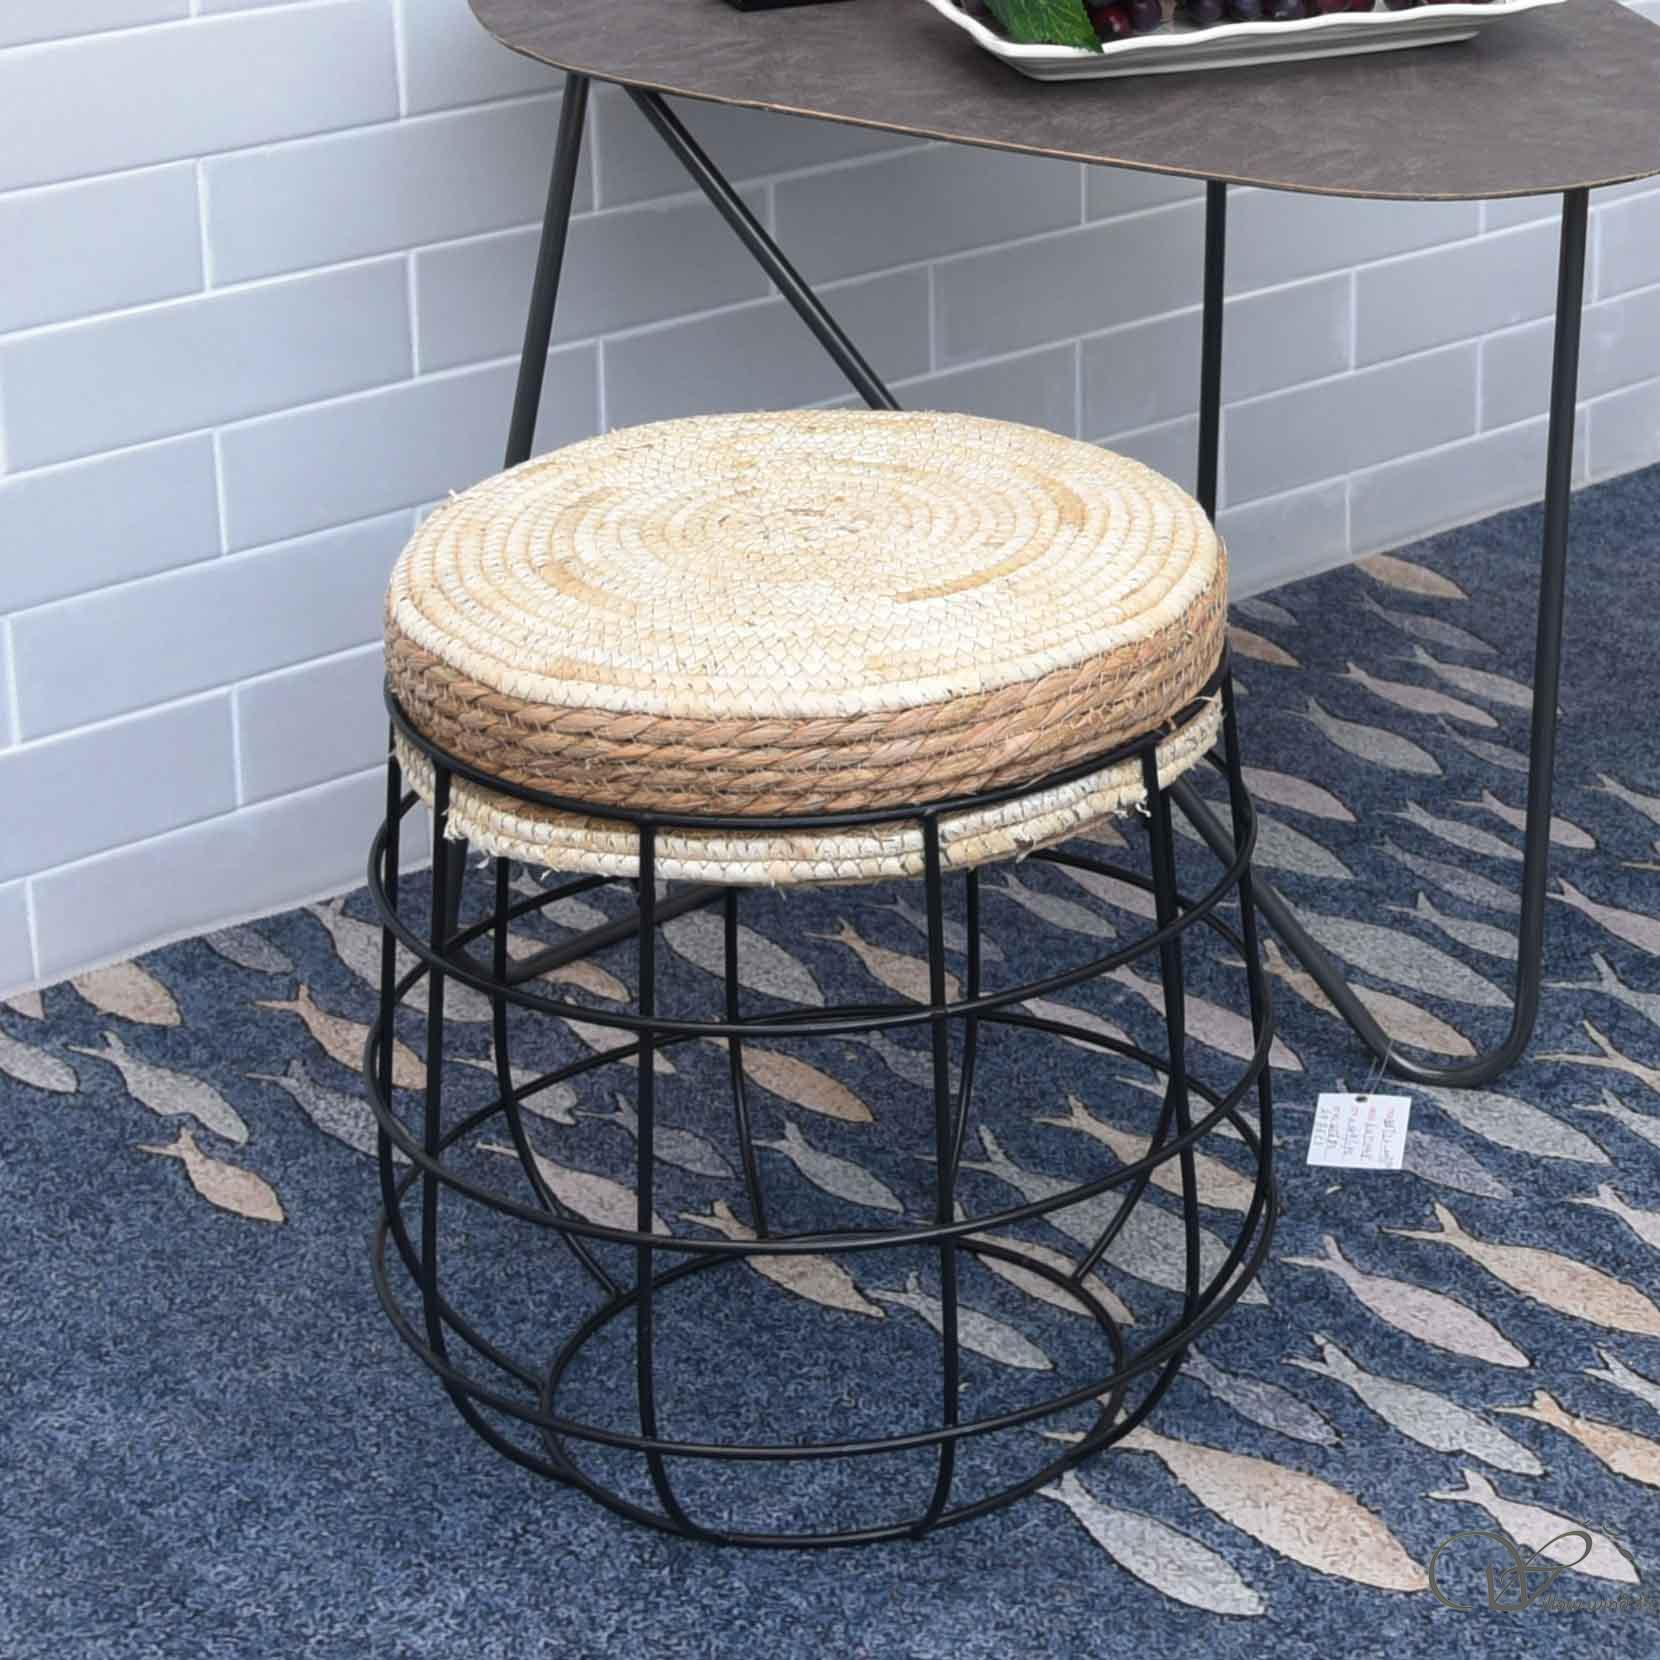 Round Cushioned Furniture Water Hyacinth Footstool Ottoman with with wire storage legs